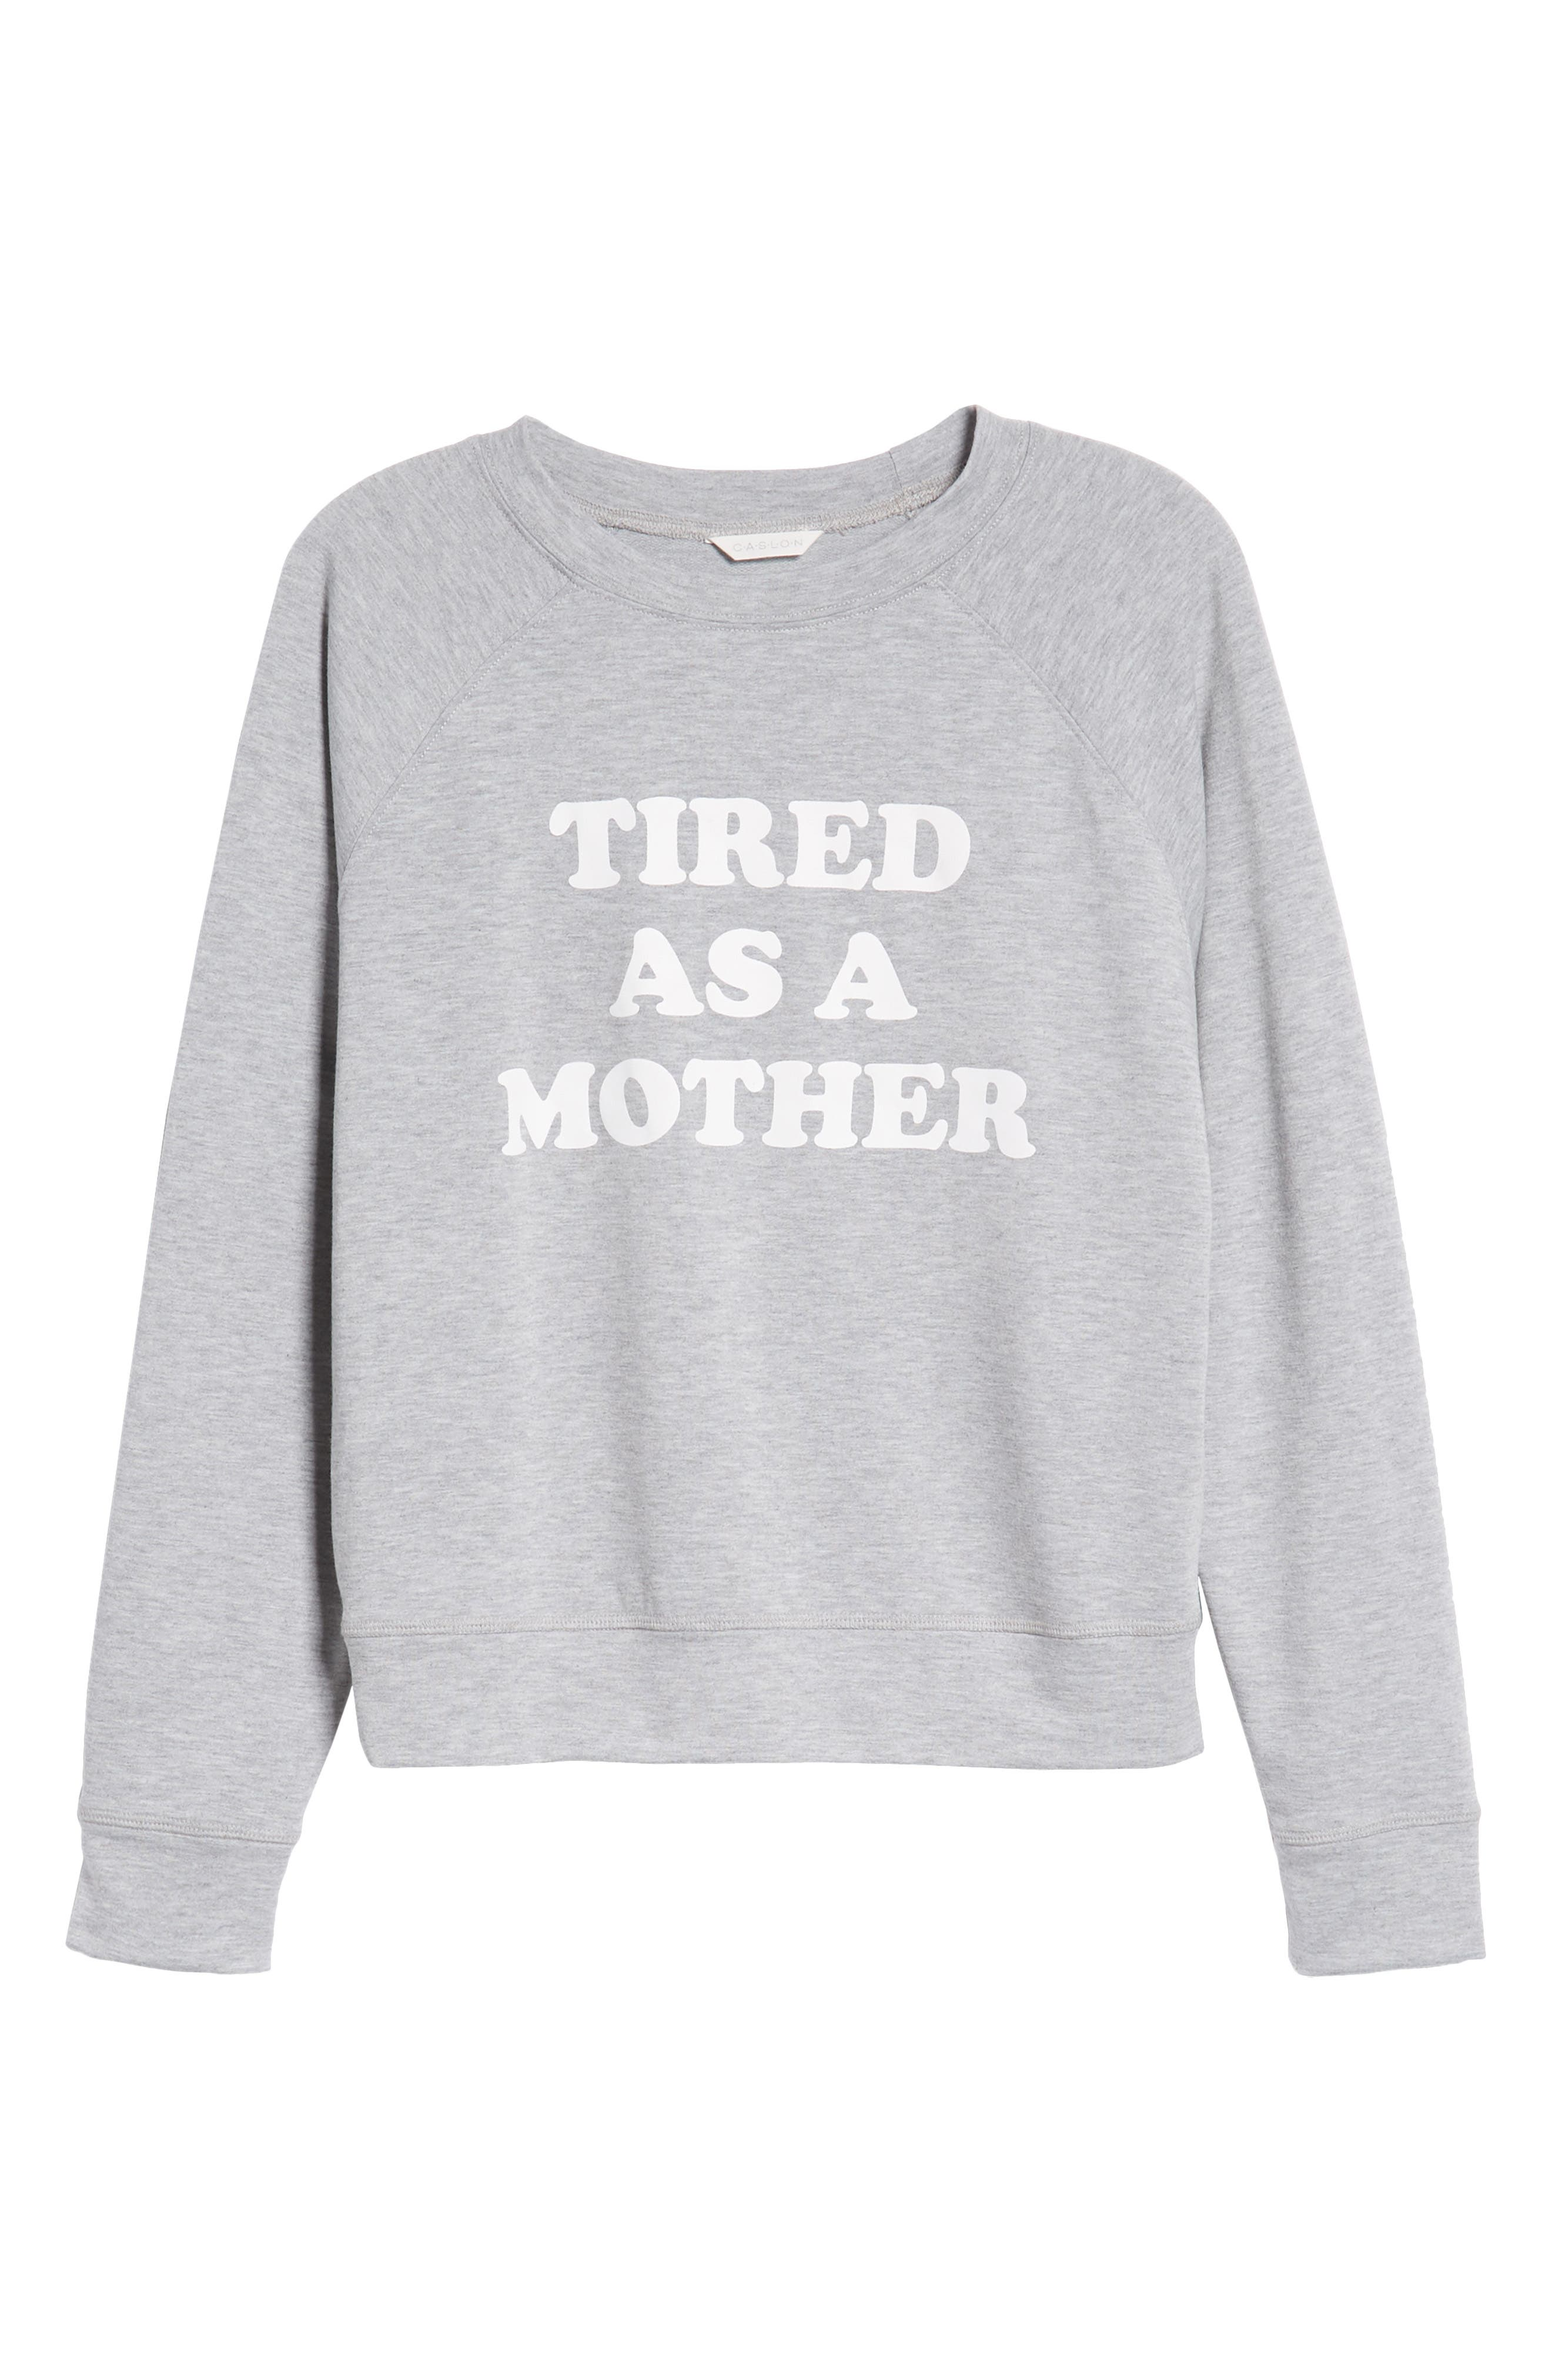 Off-Duty Tired as a Mother Sweatshirt,                             Alternate thumbnail 6, color,                             Grey Heather